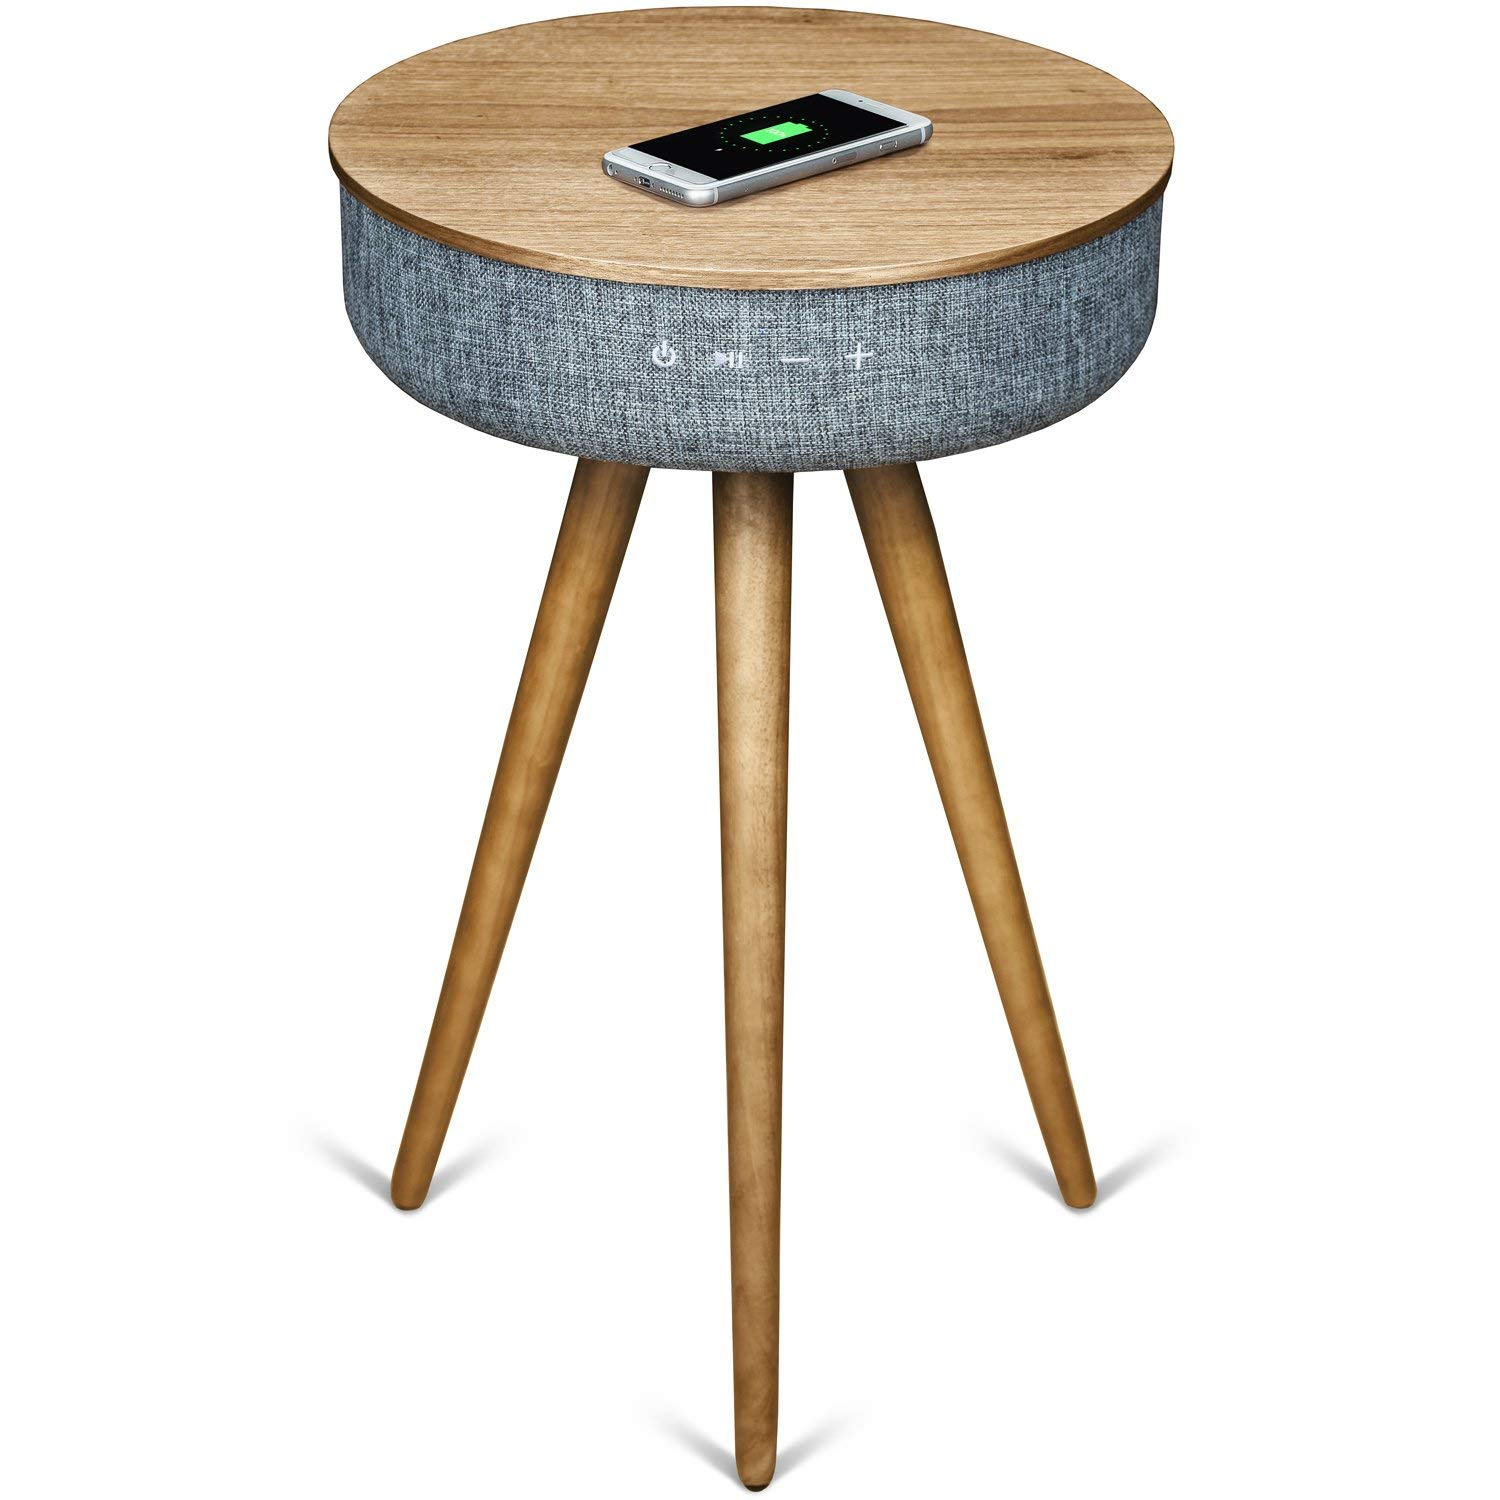 Sierra Modern Home Studio Smart Table 9